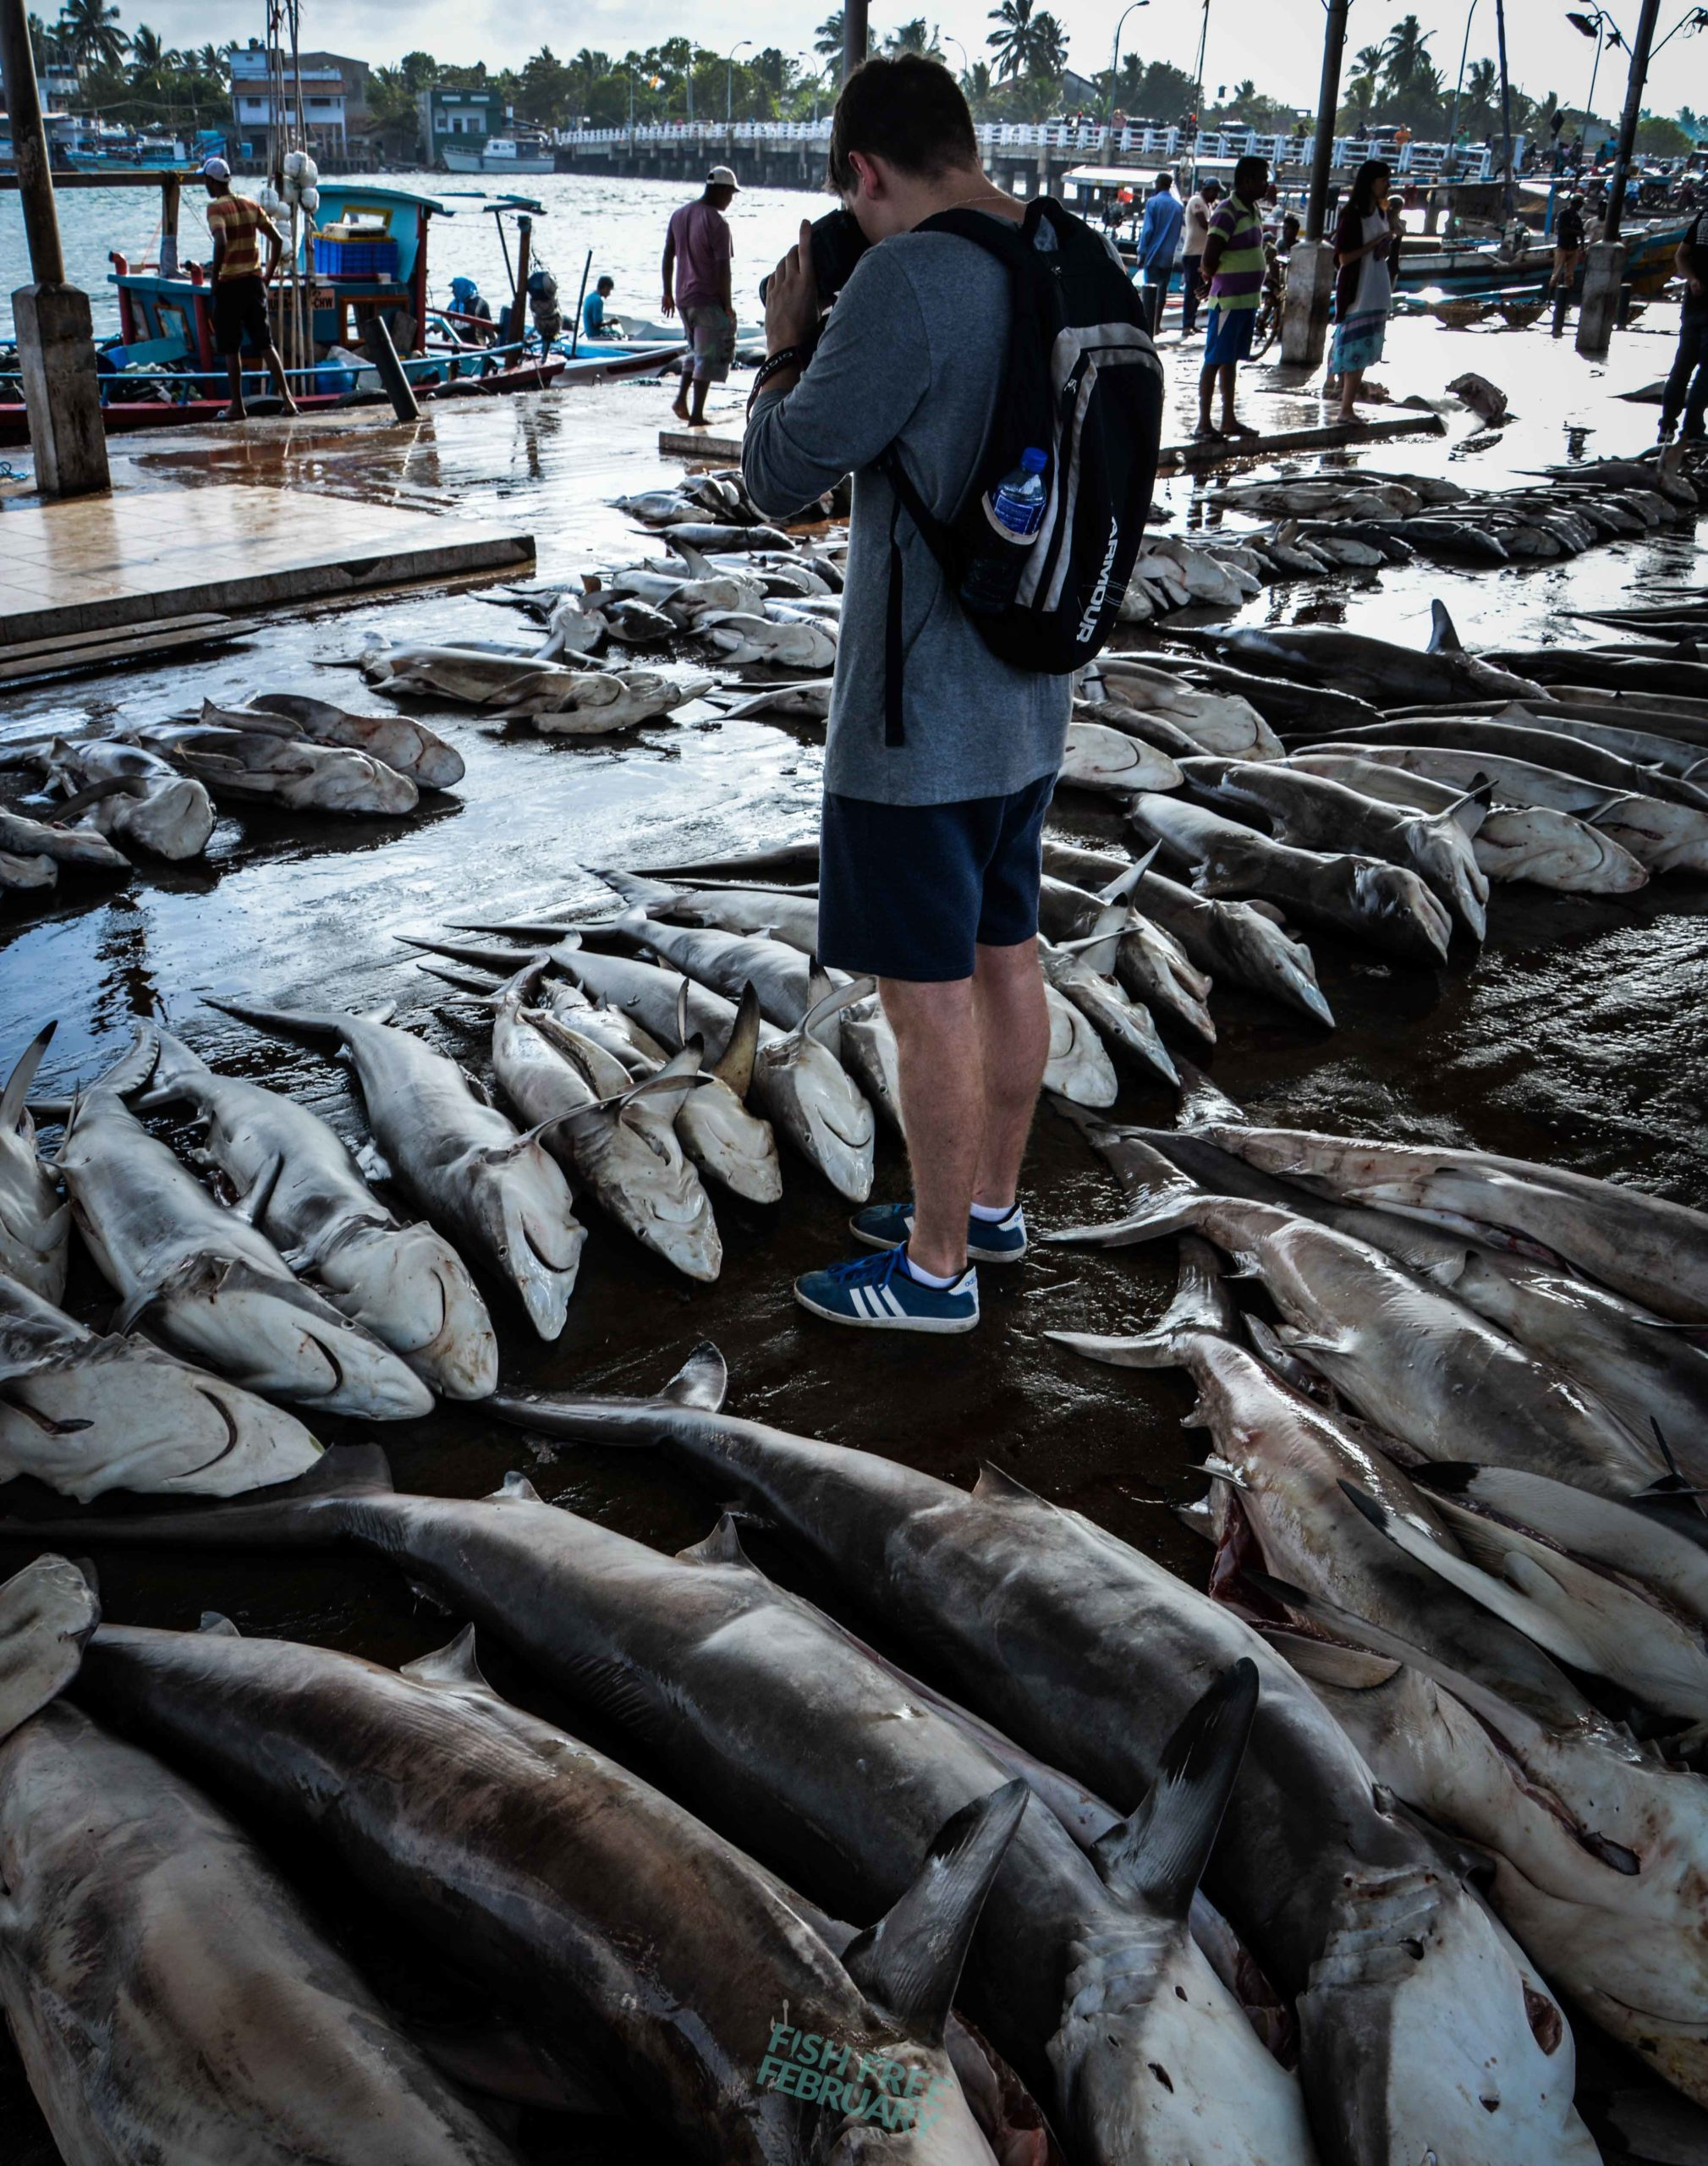 Photographing Dead sharks in a fish market - Fish Free February